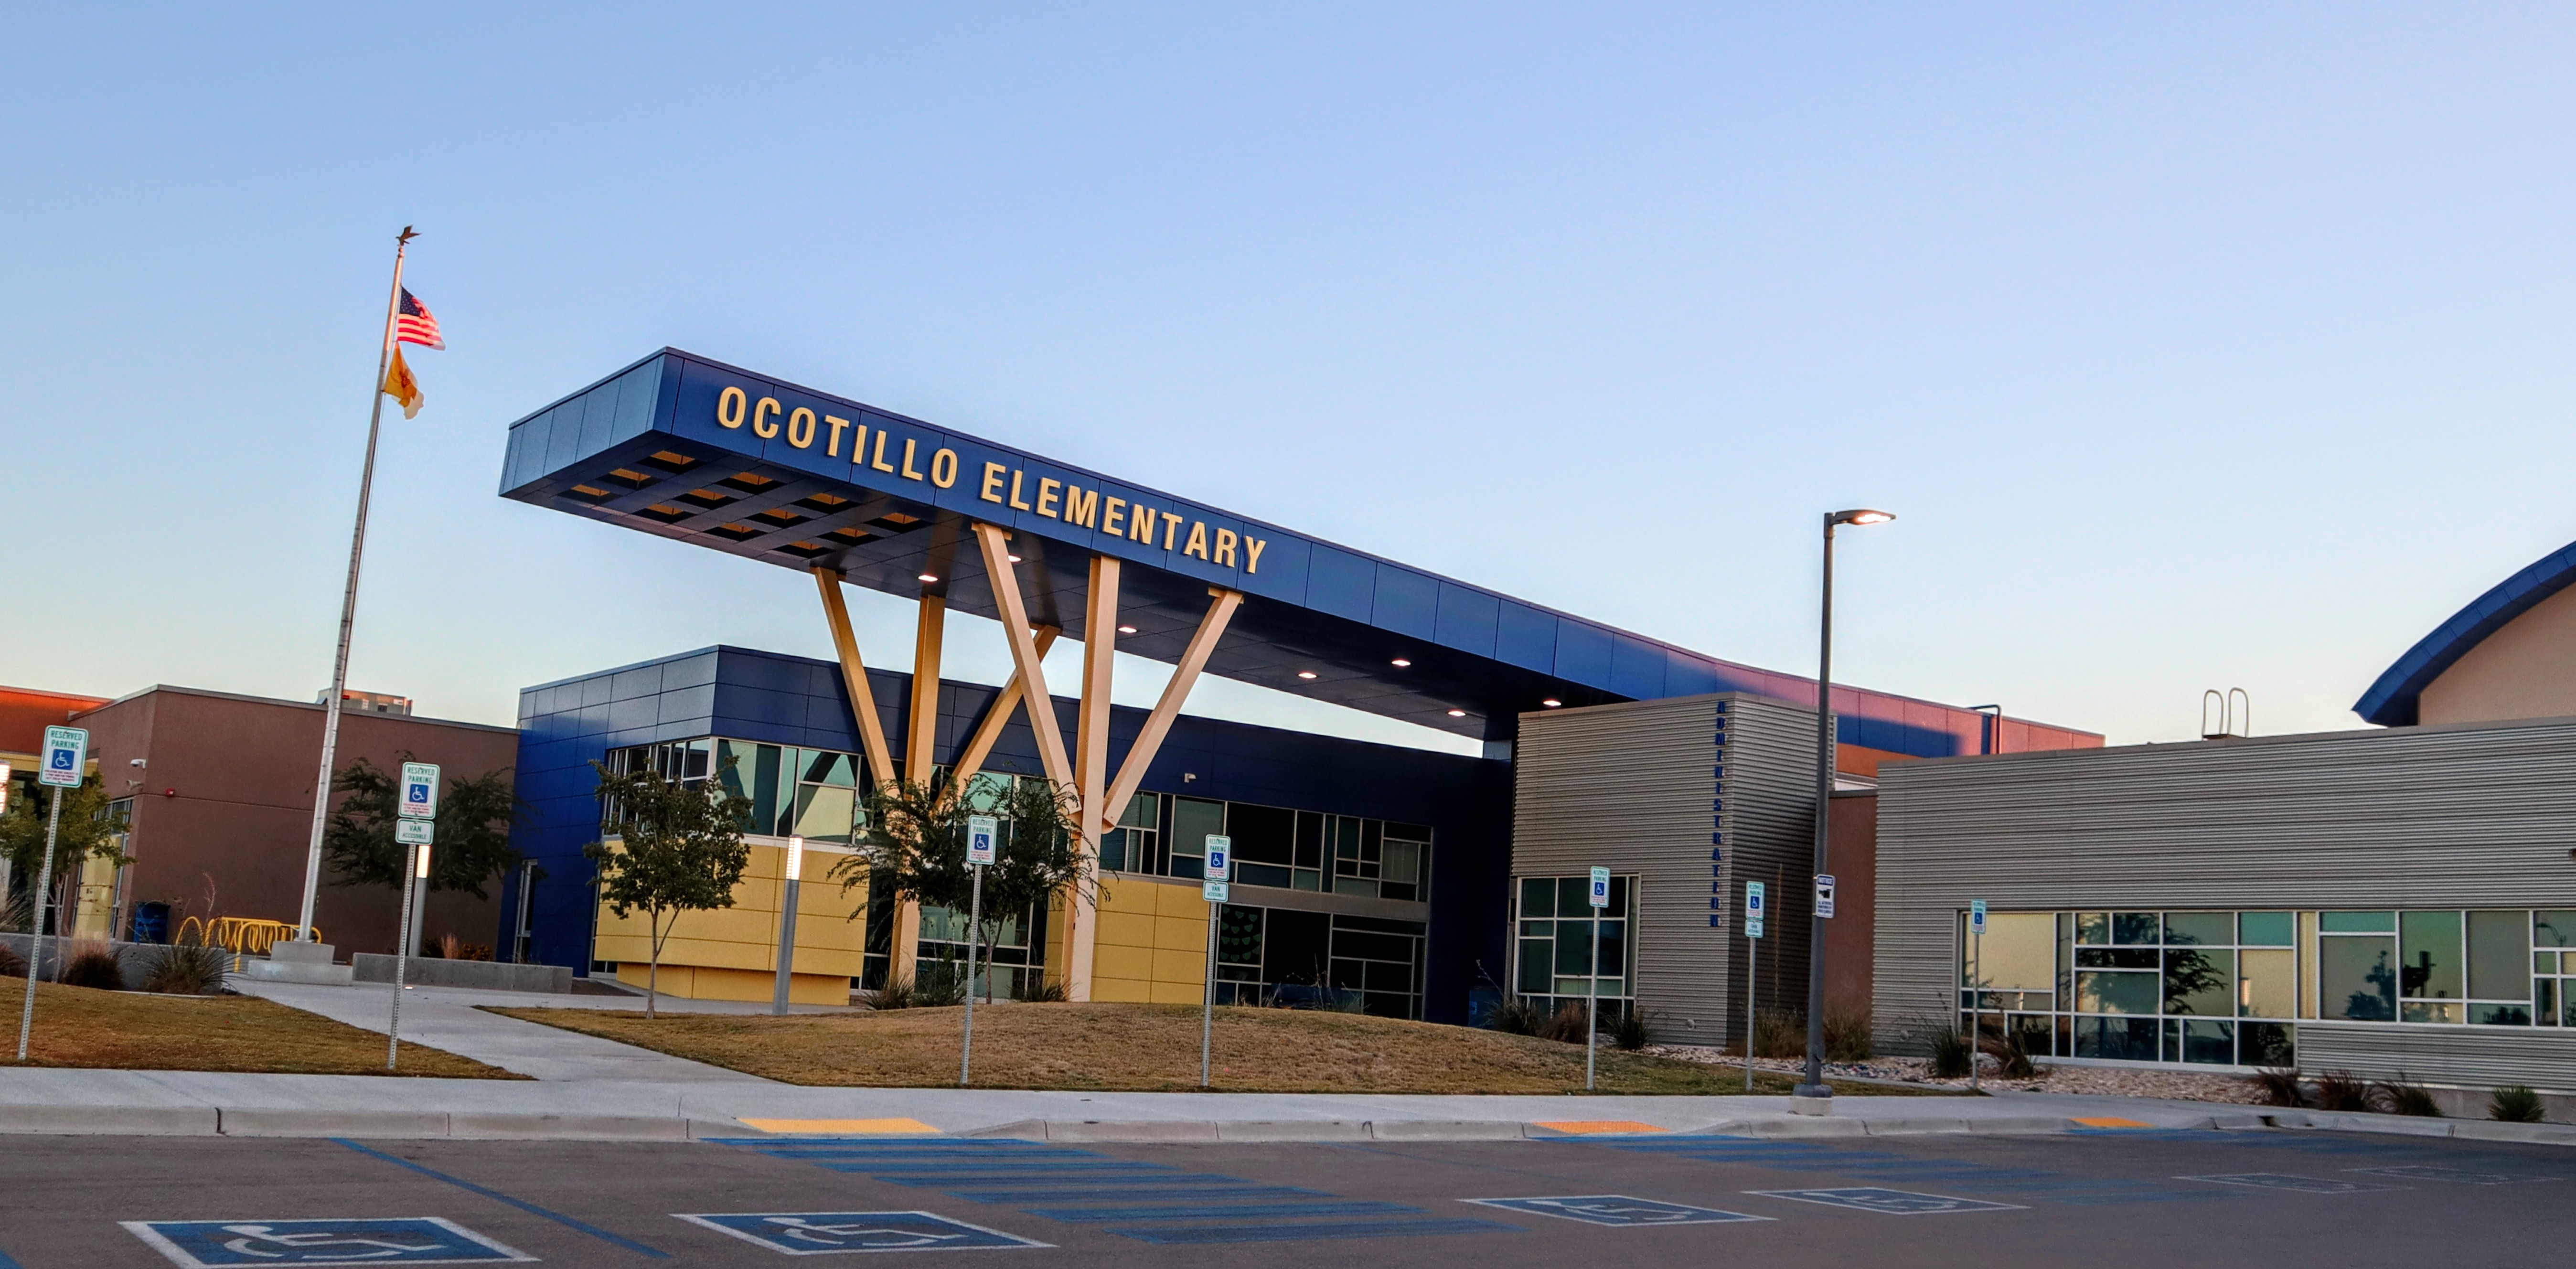 Entrace to Ocotillo Elementary